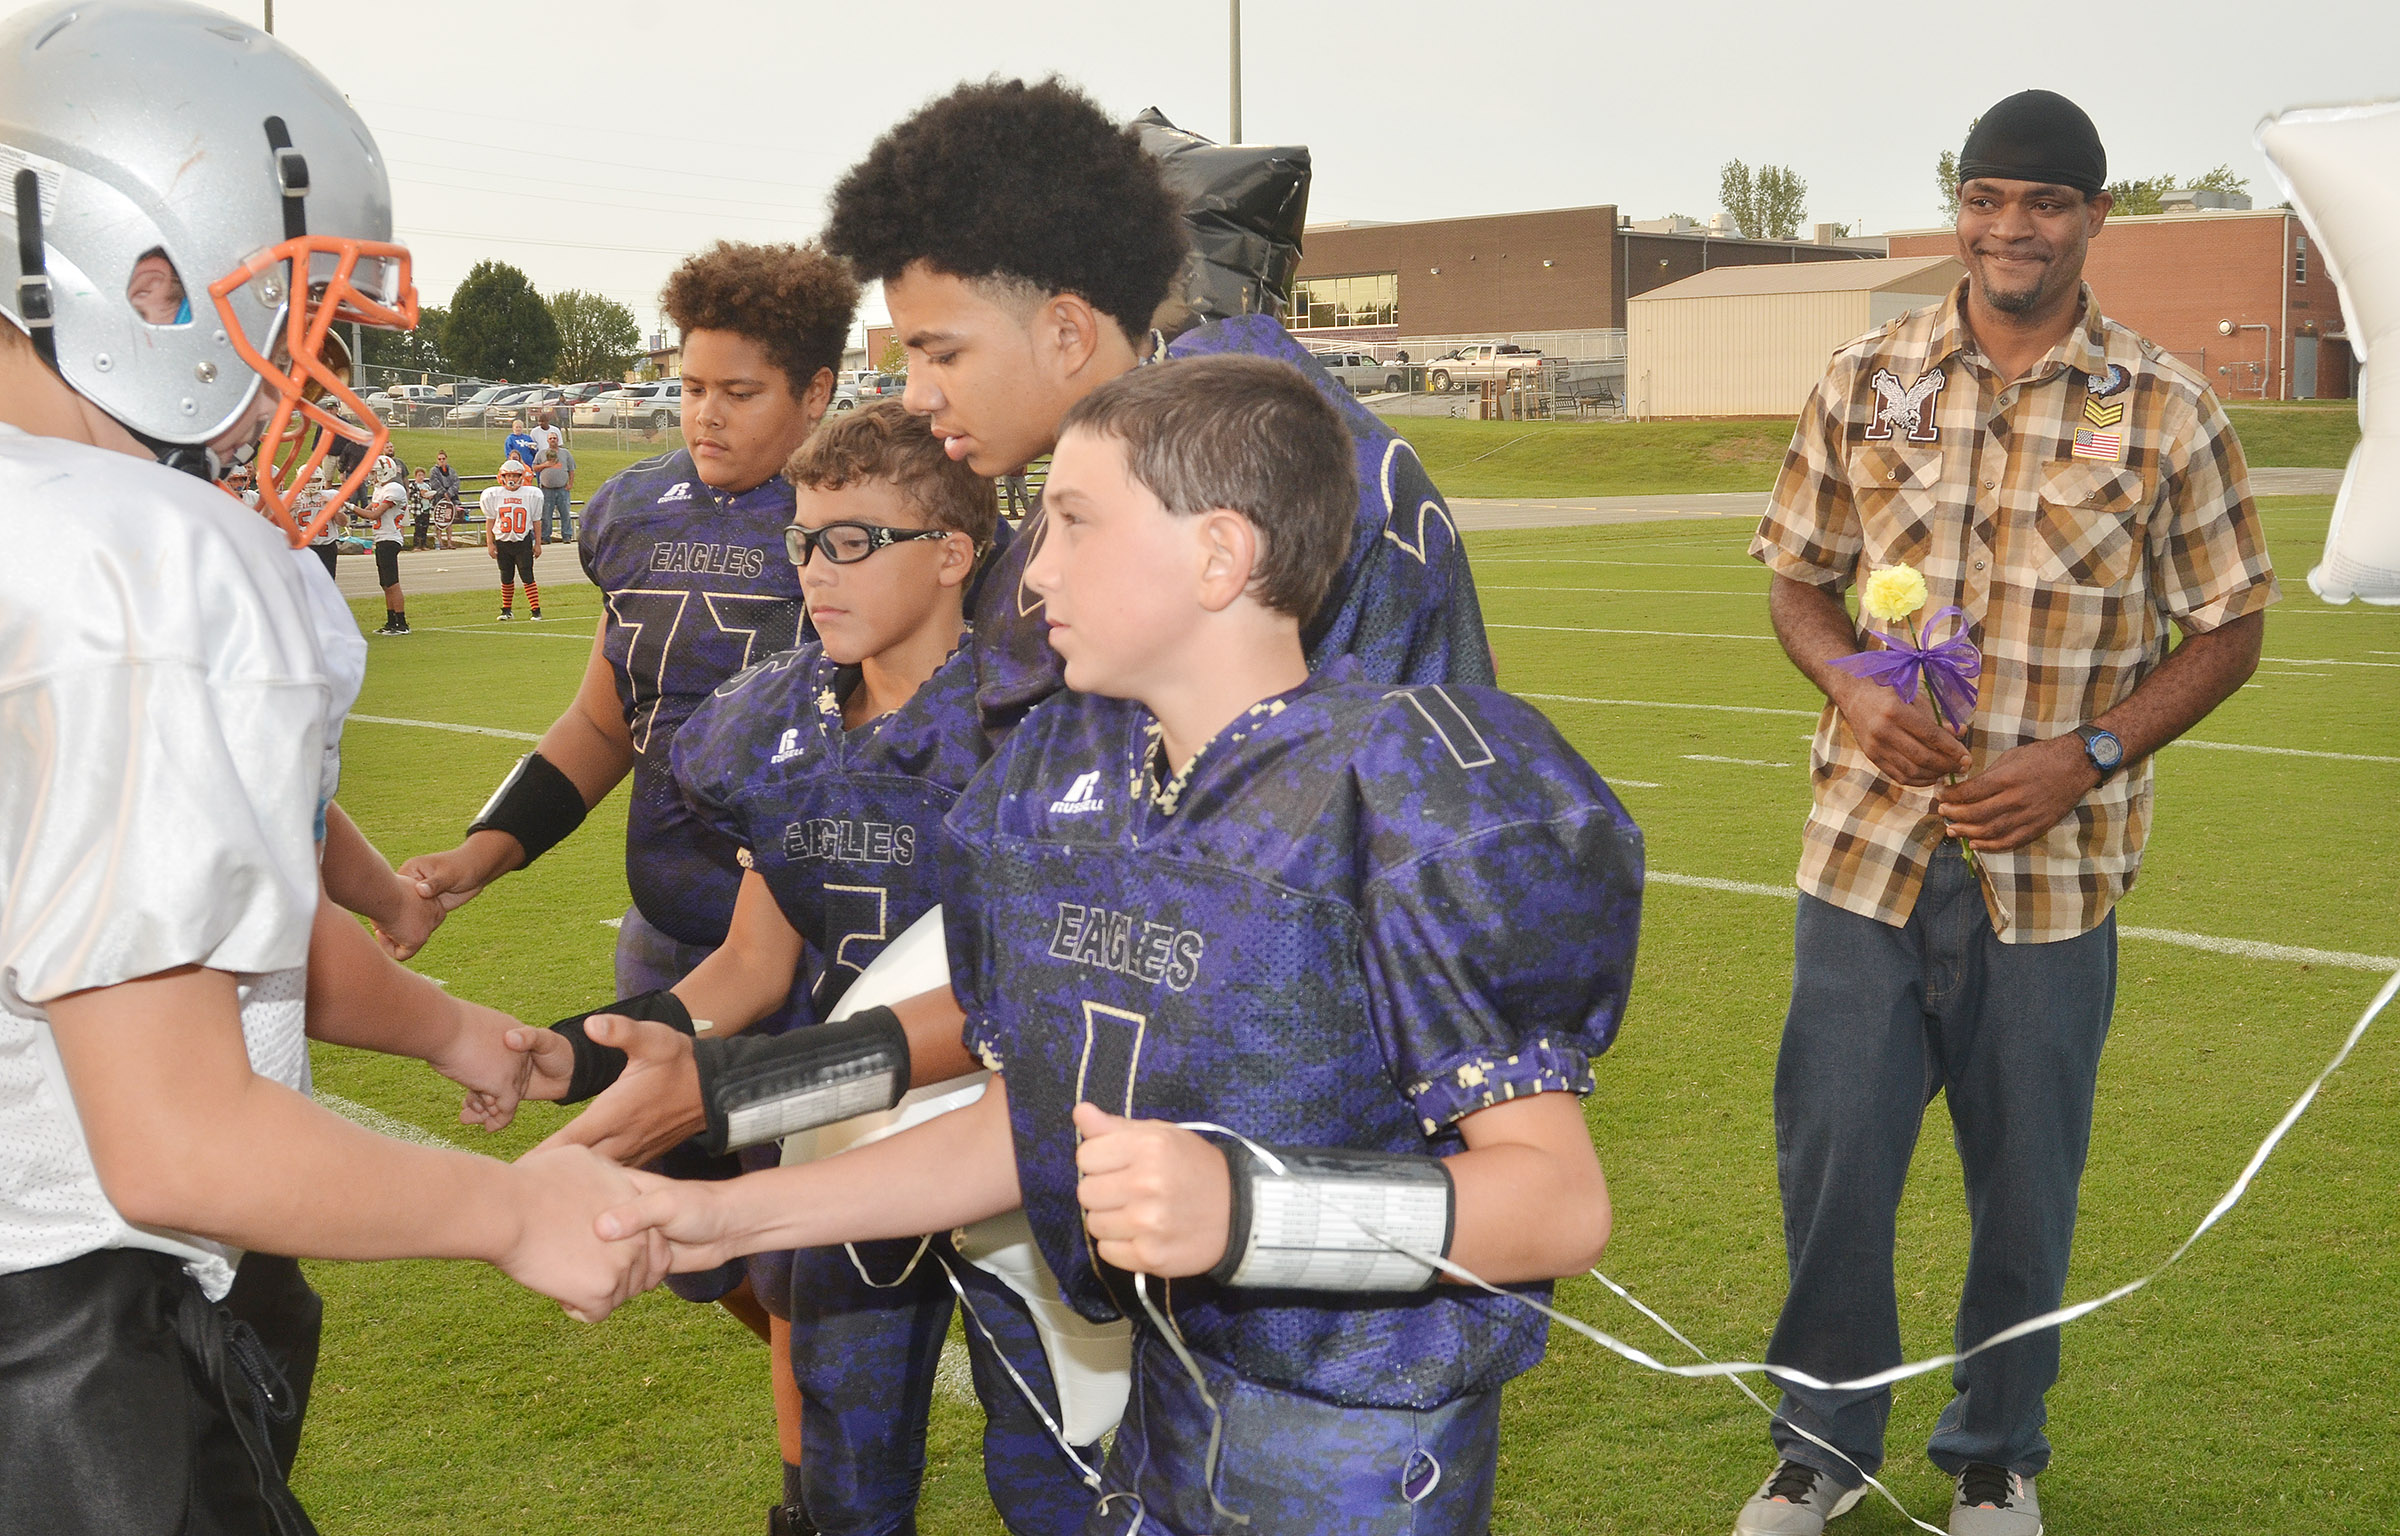 CMS eighth-graders, from left, Brandon Pittman, Logan Phillips, Adrien Smith and Dakota Harris shake hands with Hart County players. At right is William Smith, the father of Adrien Smith and the late Cameron Smith.